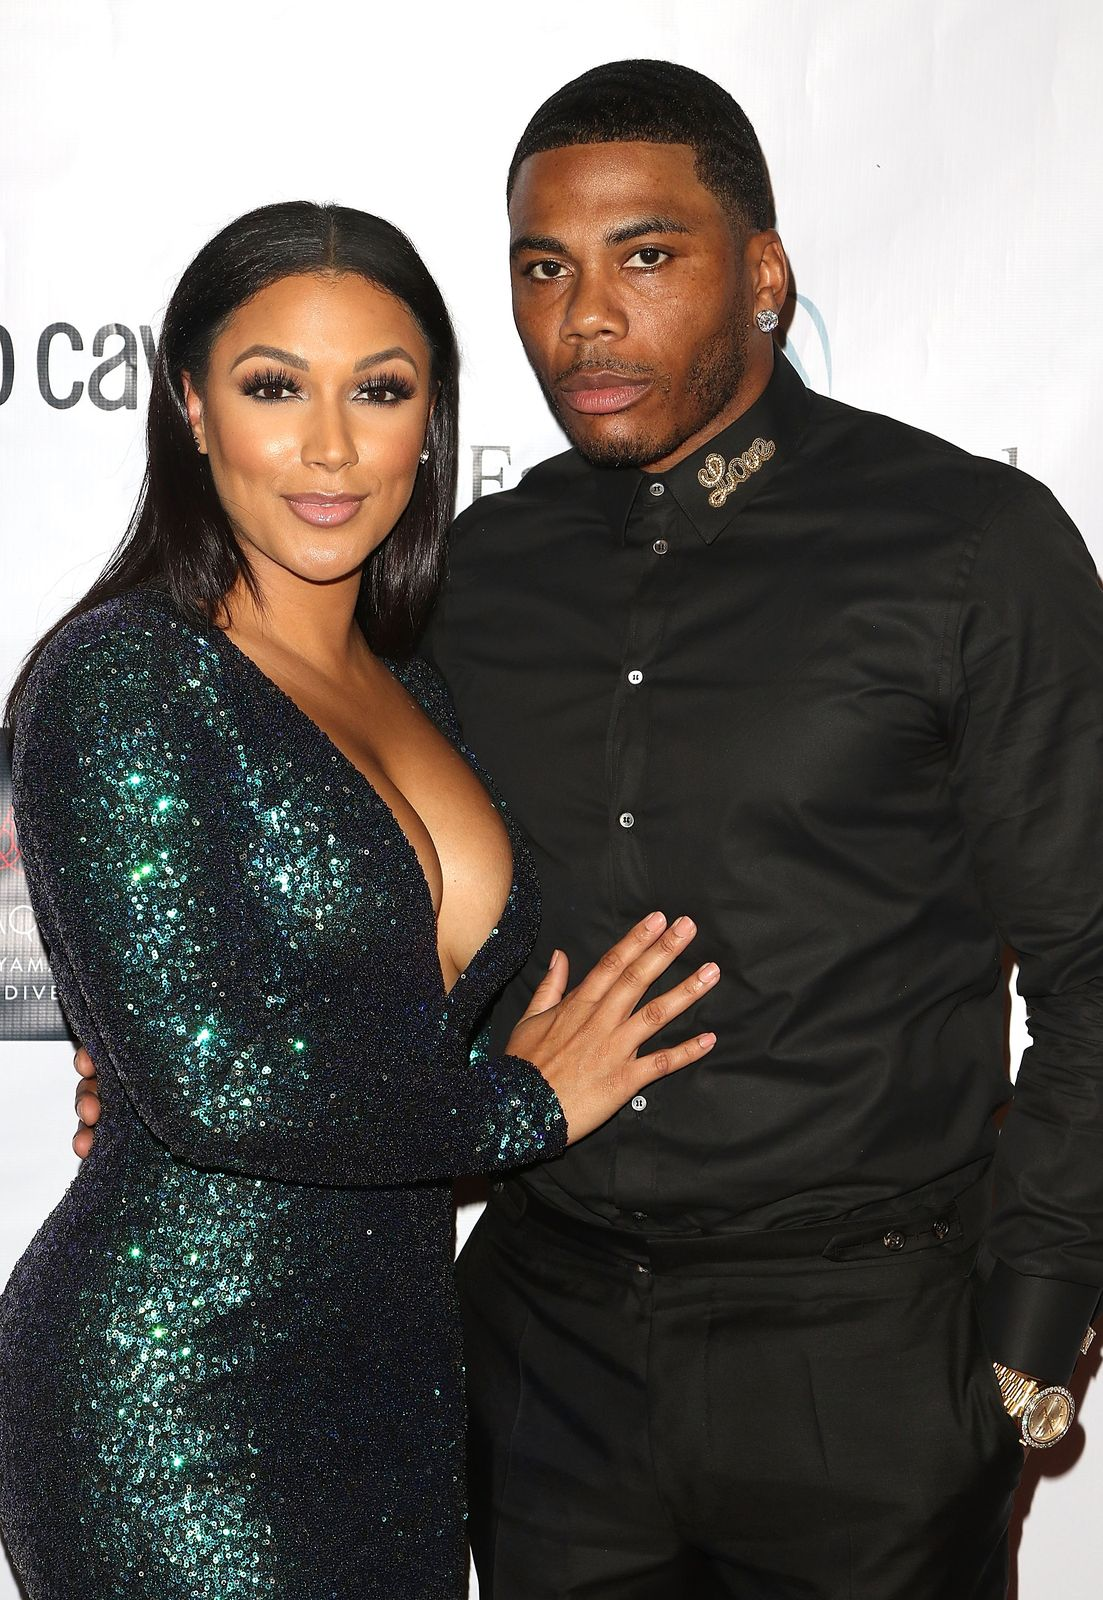 Shantel Jackson and Nelly at the Face Foward Gala in Los Angeles, California. September 24, 2016. | Photo: Getty Images.